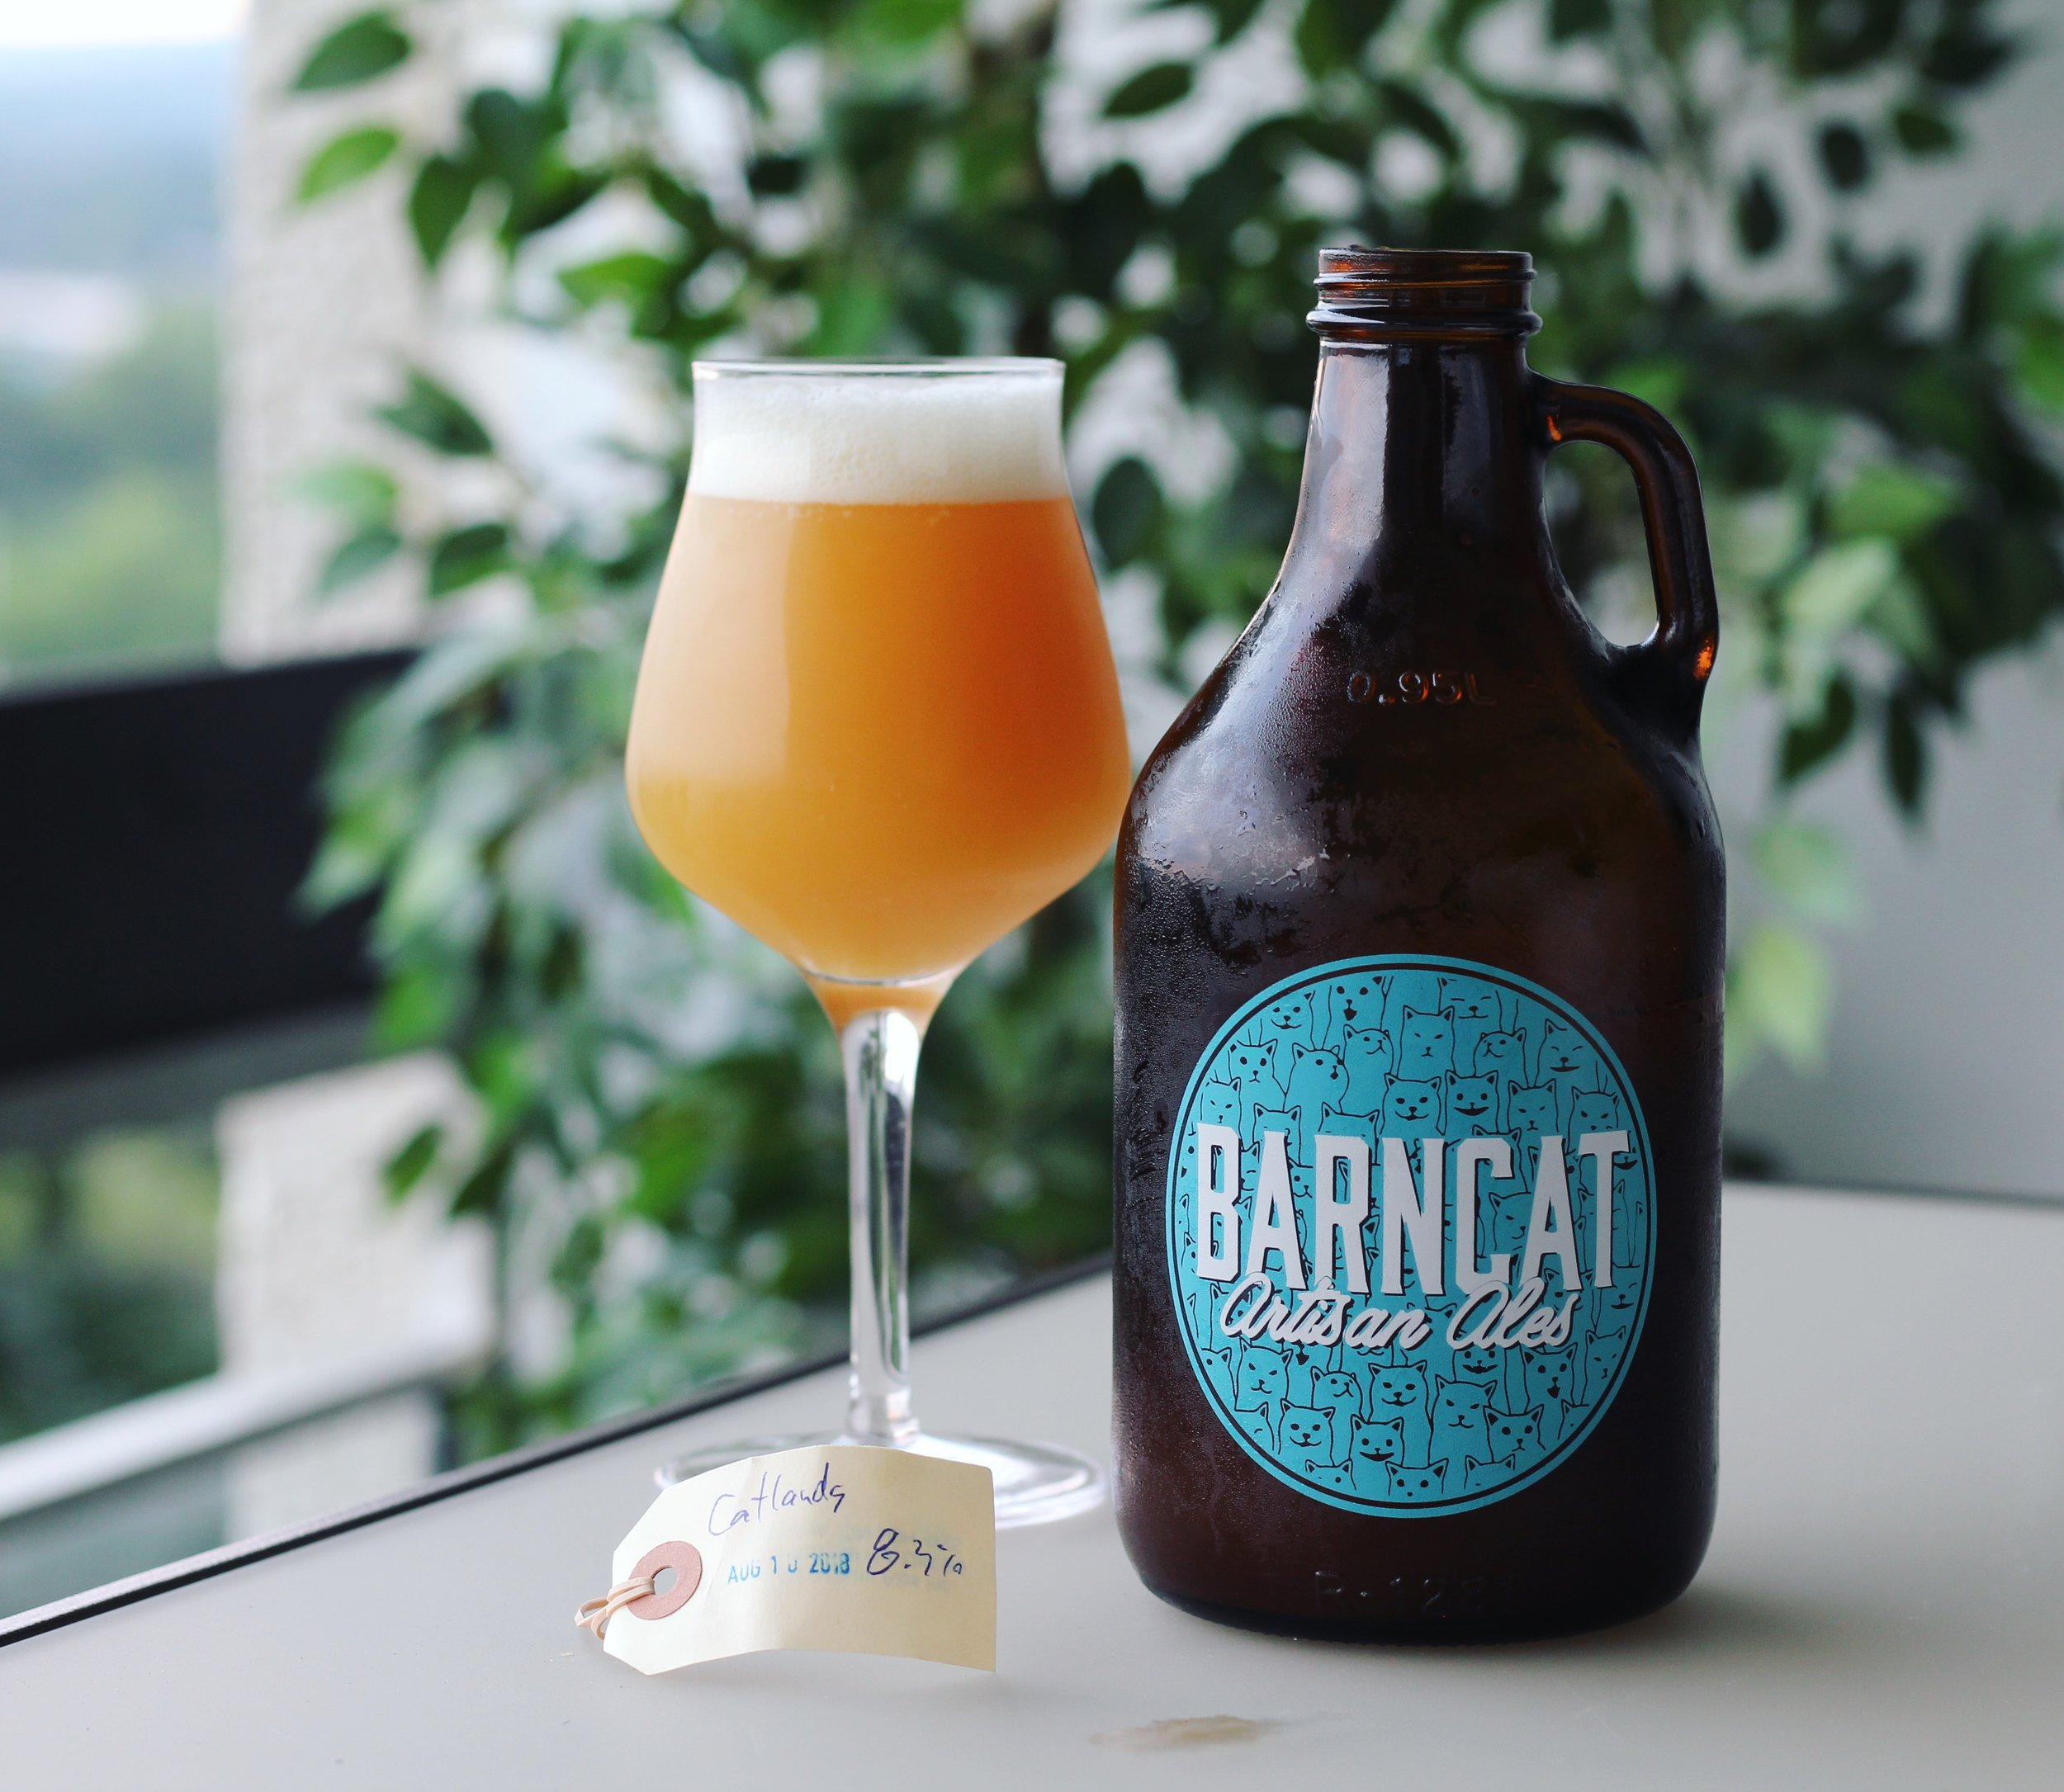 Barncat Artisan Ales  from Cambridge are Ontario's kings of haze, pumping out some of the best in the province.